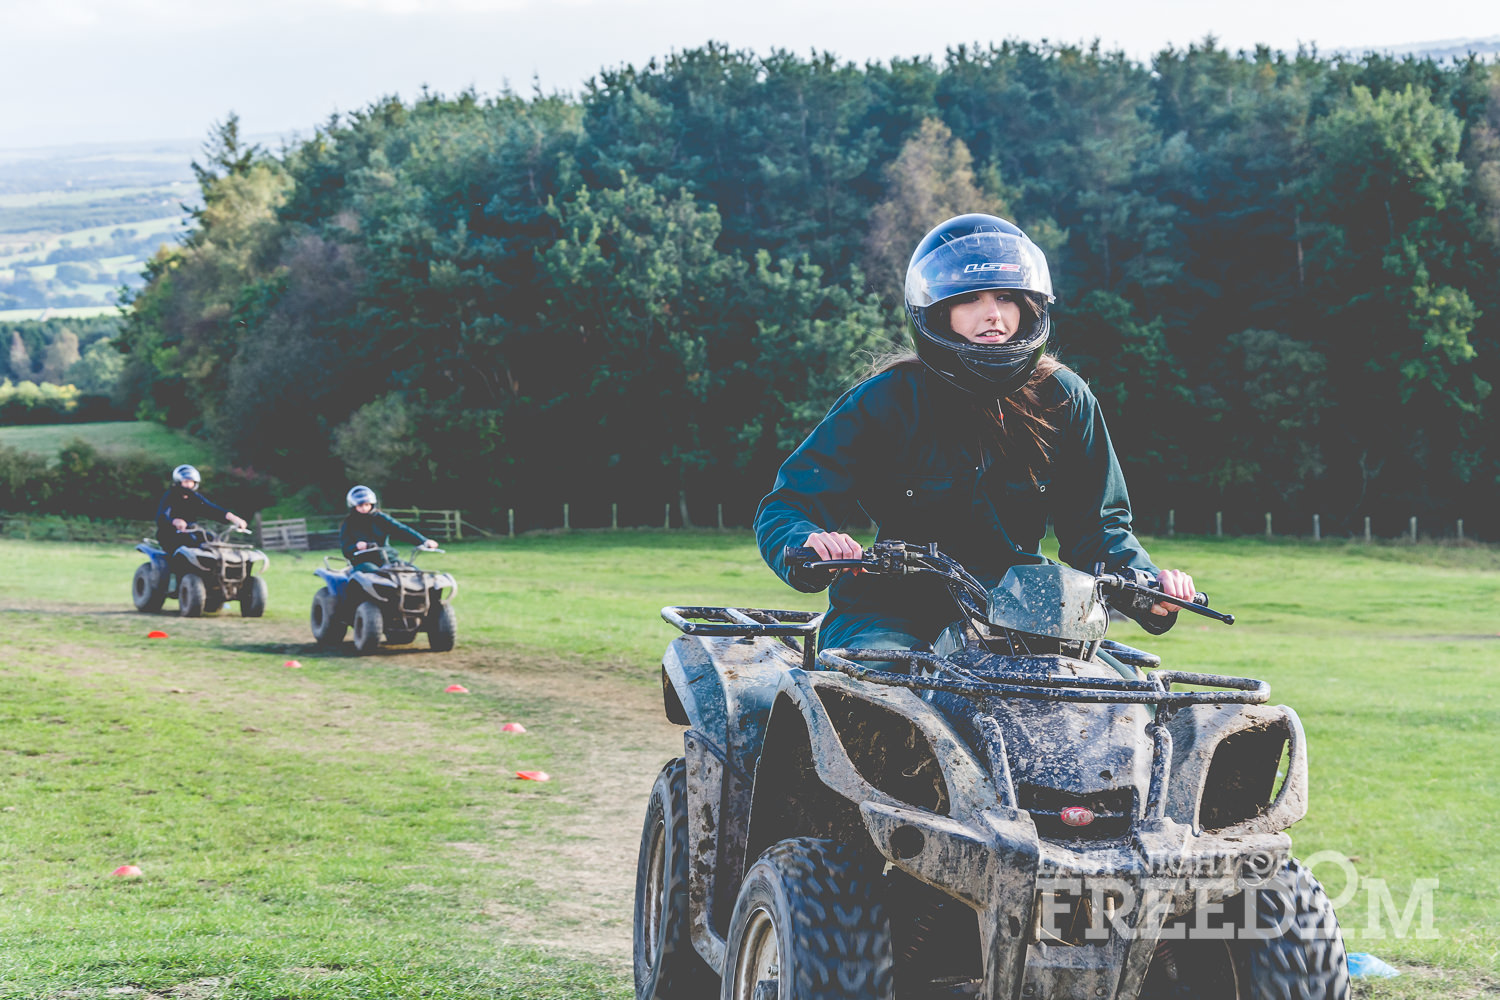 Some of the LNOF team riding quad bikes